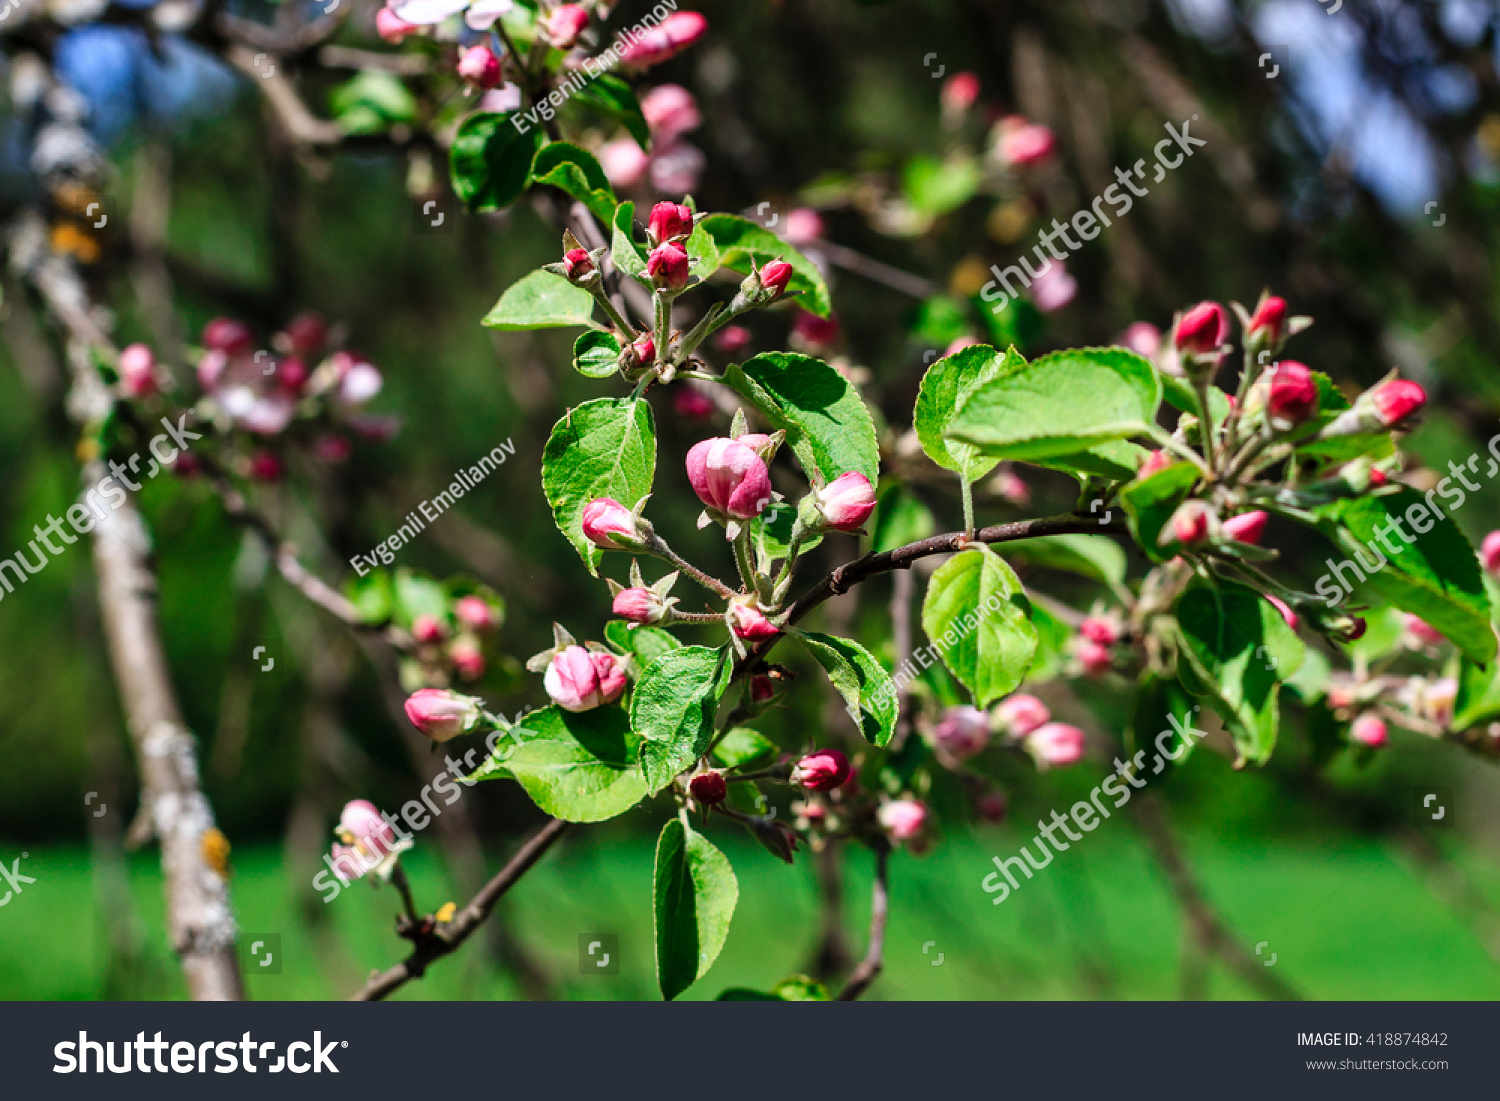 Flowers apple blossoms spring season may stock photo royalty free flowers of the apple blossoms at spring season may mightylinksfo Gallery